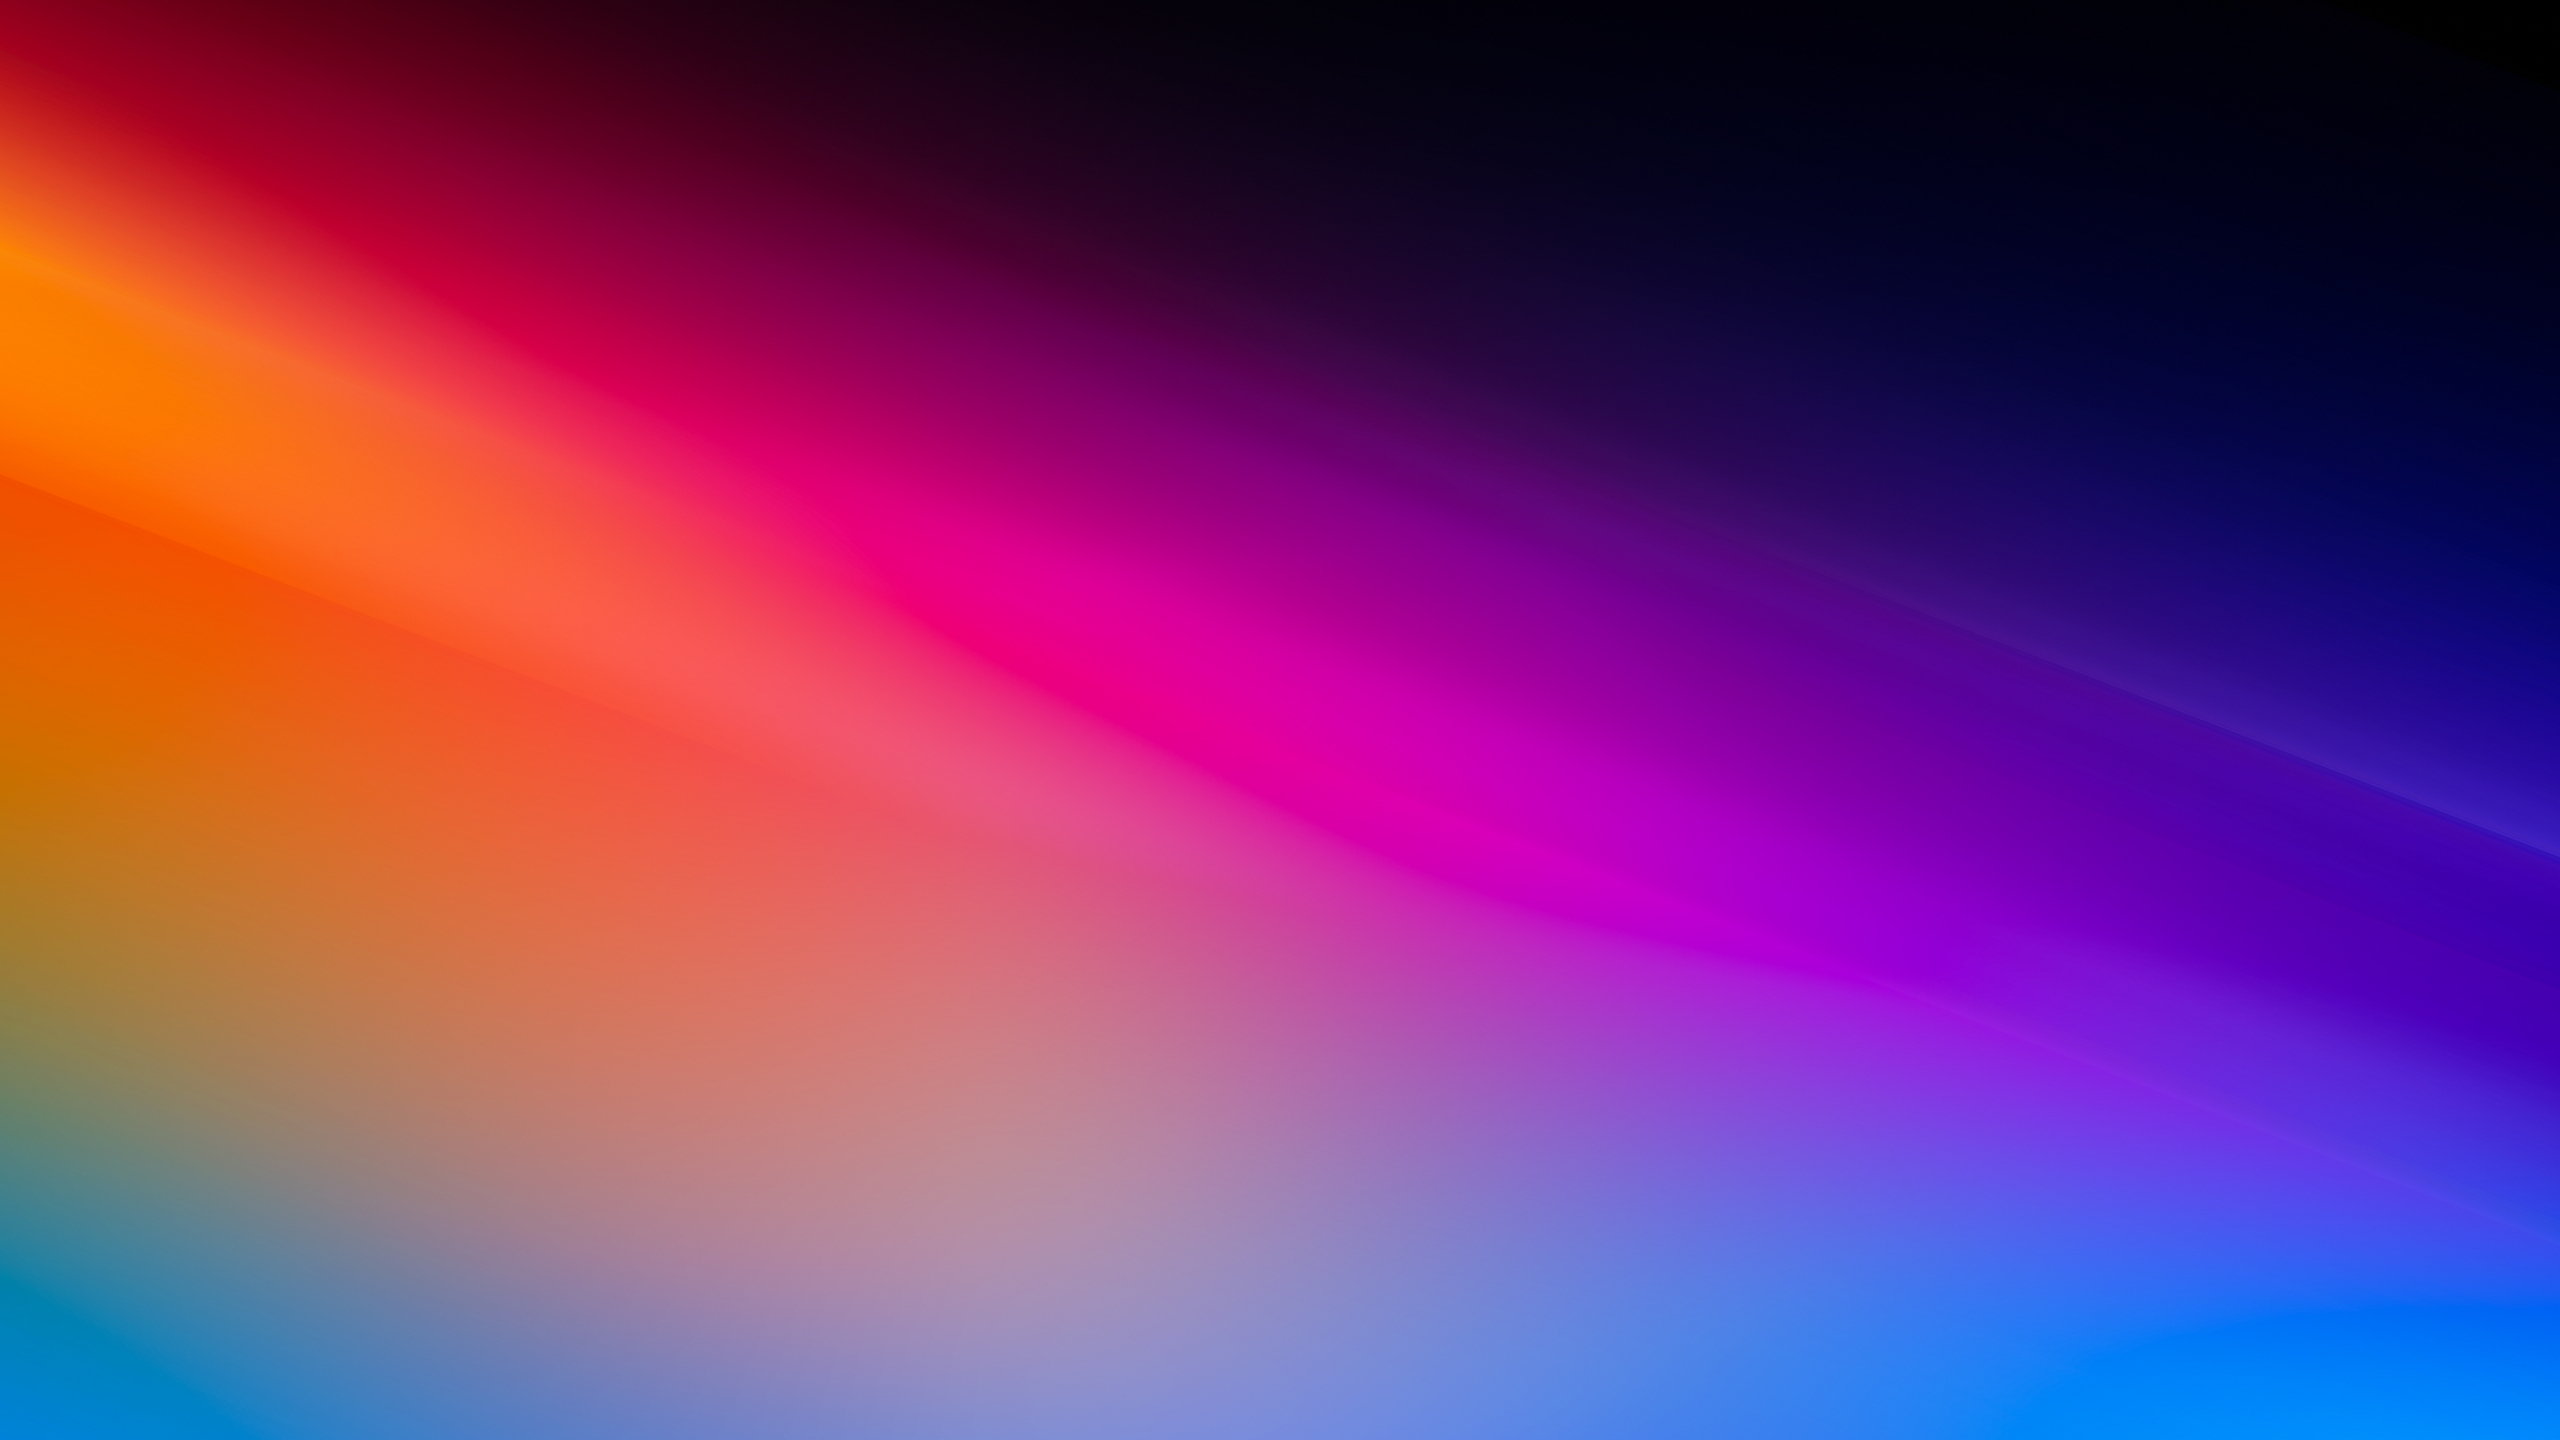 2560x1440 Gradient Art Abstract 4k 1440P Resolution HD 4k ...